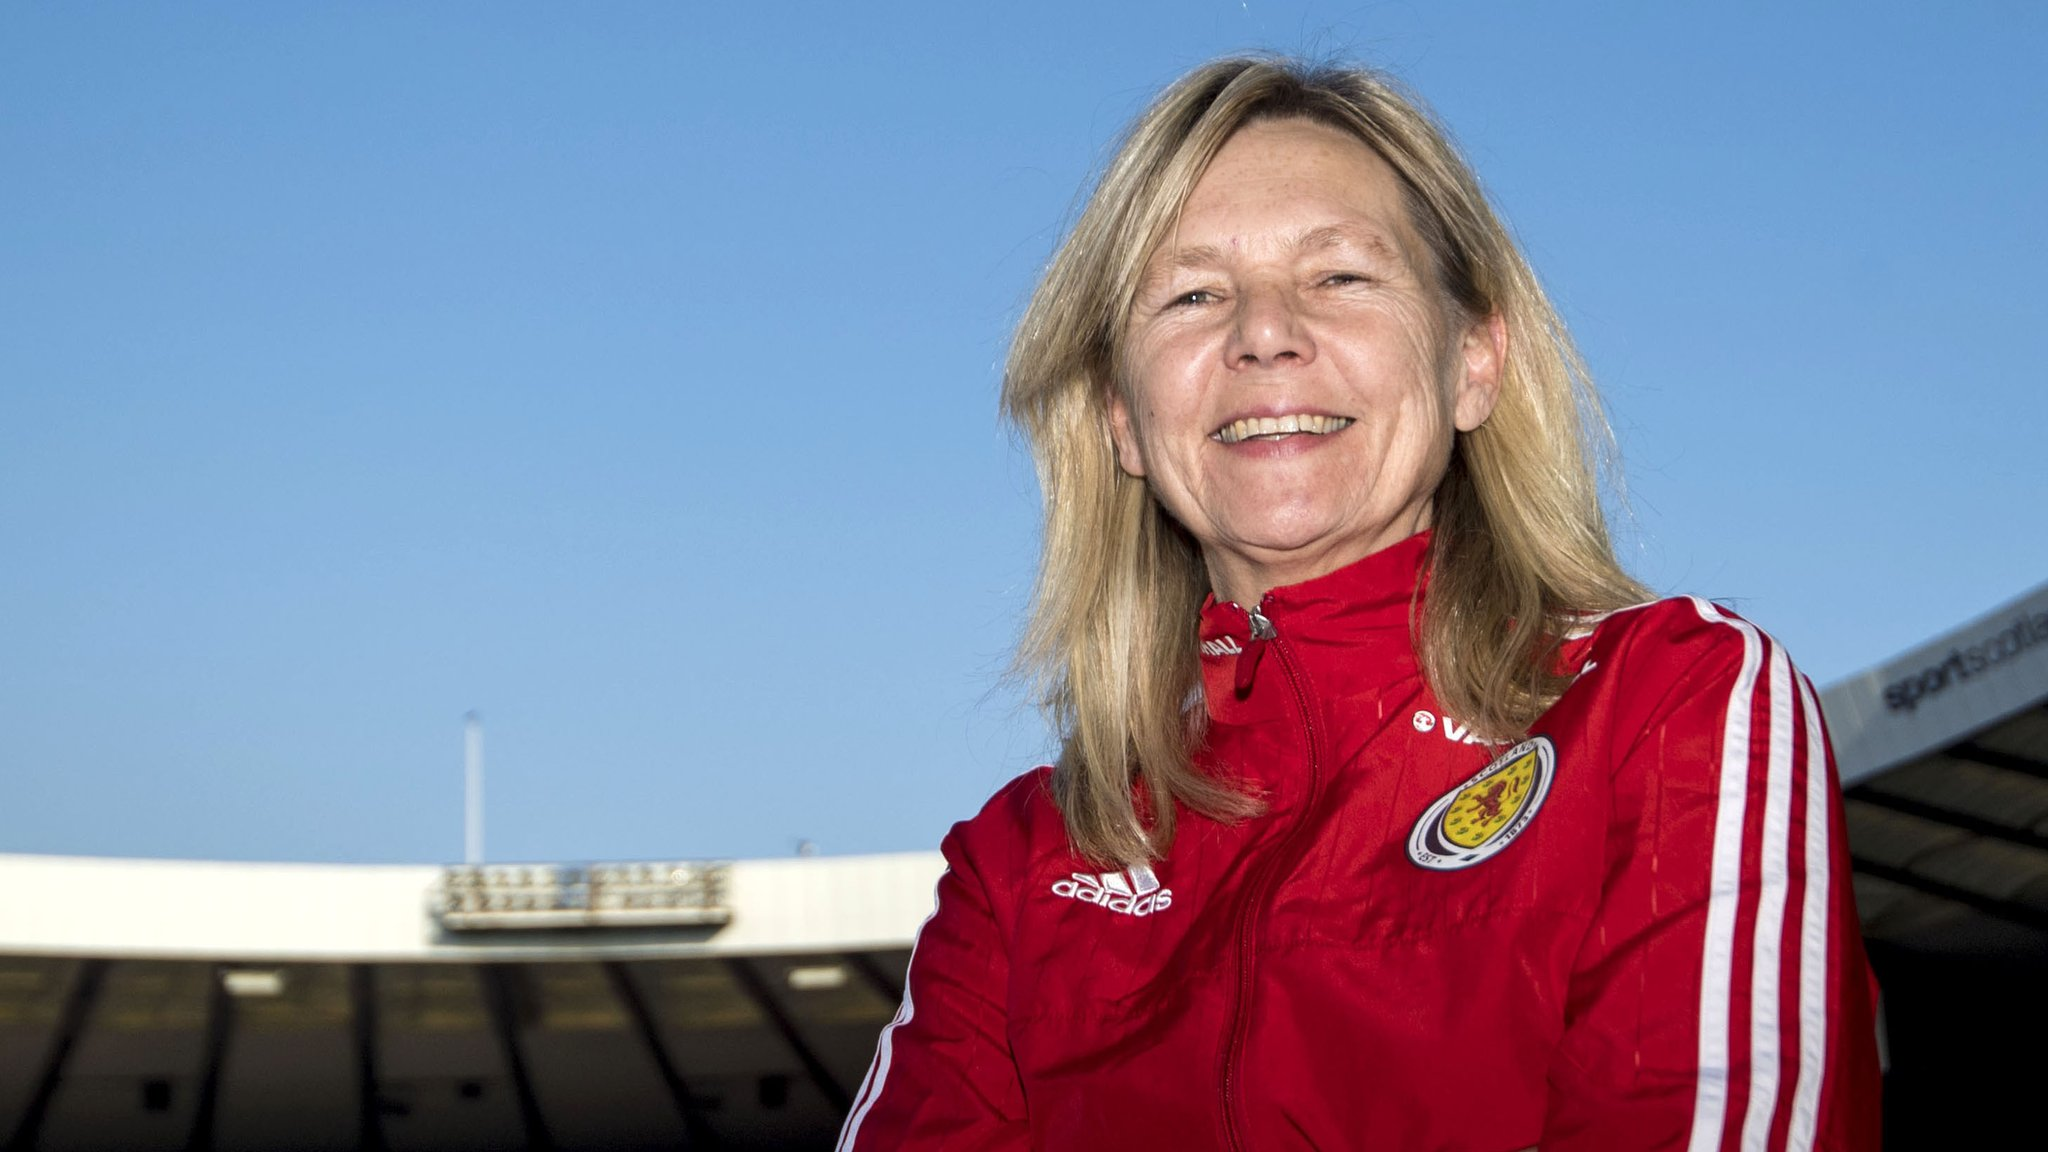 Scotland boss Signeul calls for female successor